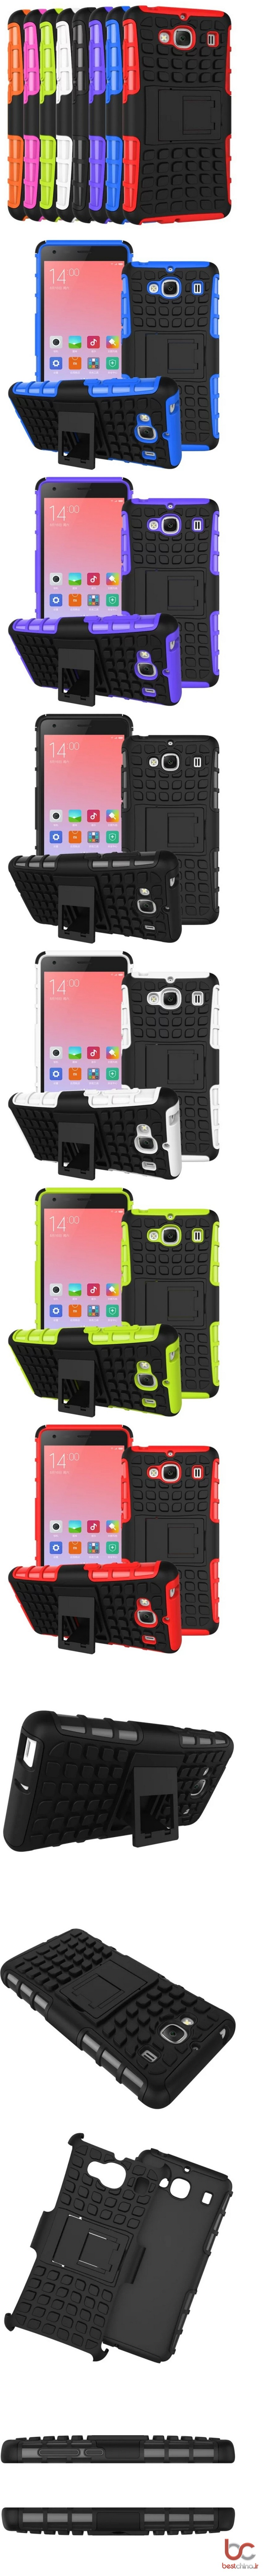 Xiaomi Redmi 2 TPU Armor Back Cover (1)